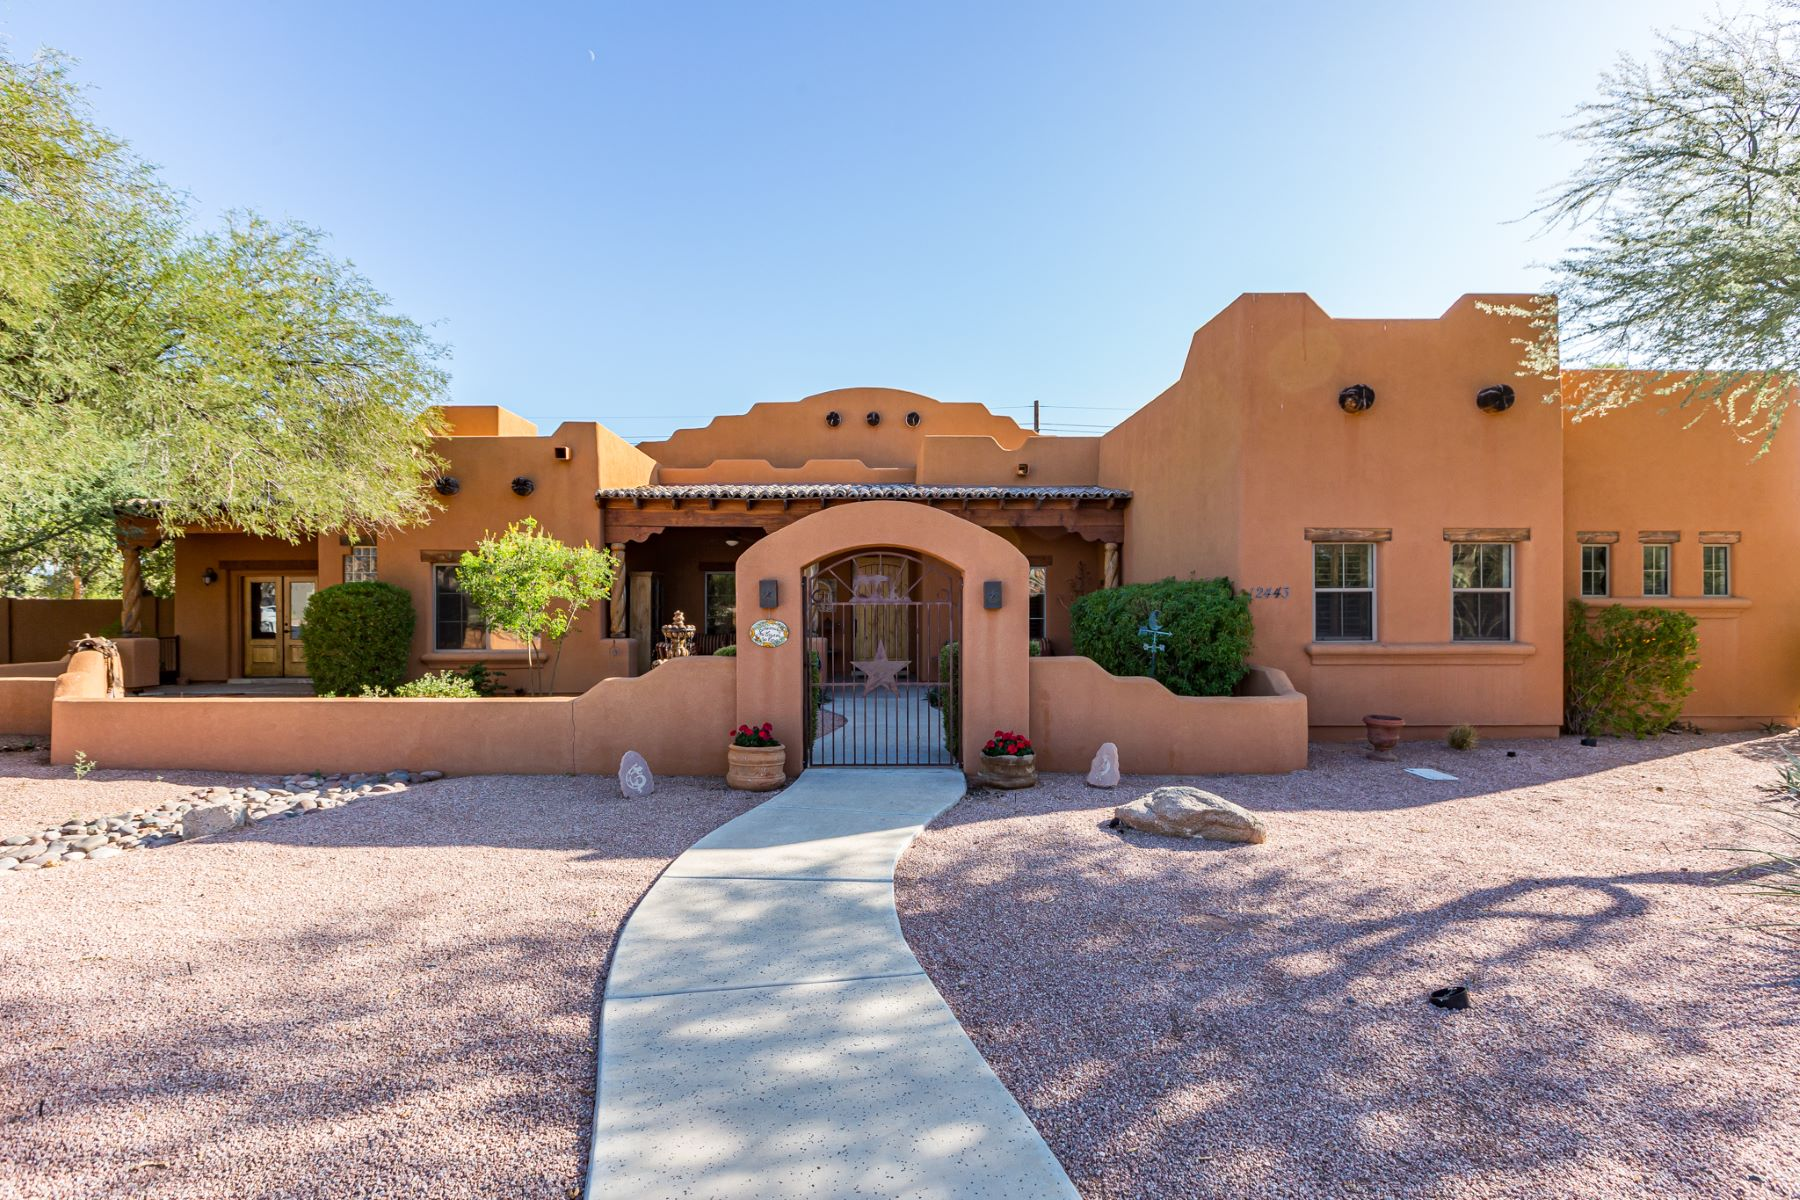 Single Family Homes for Sale at Stunning Santa Fe Home 12443 E Haymore Ct Chandler, Arizona 85249 United States